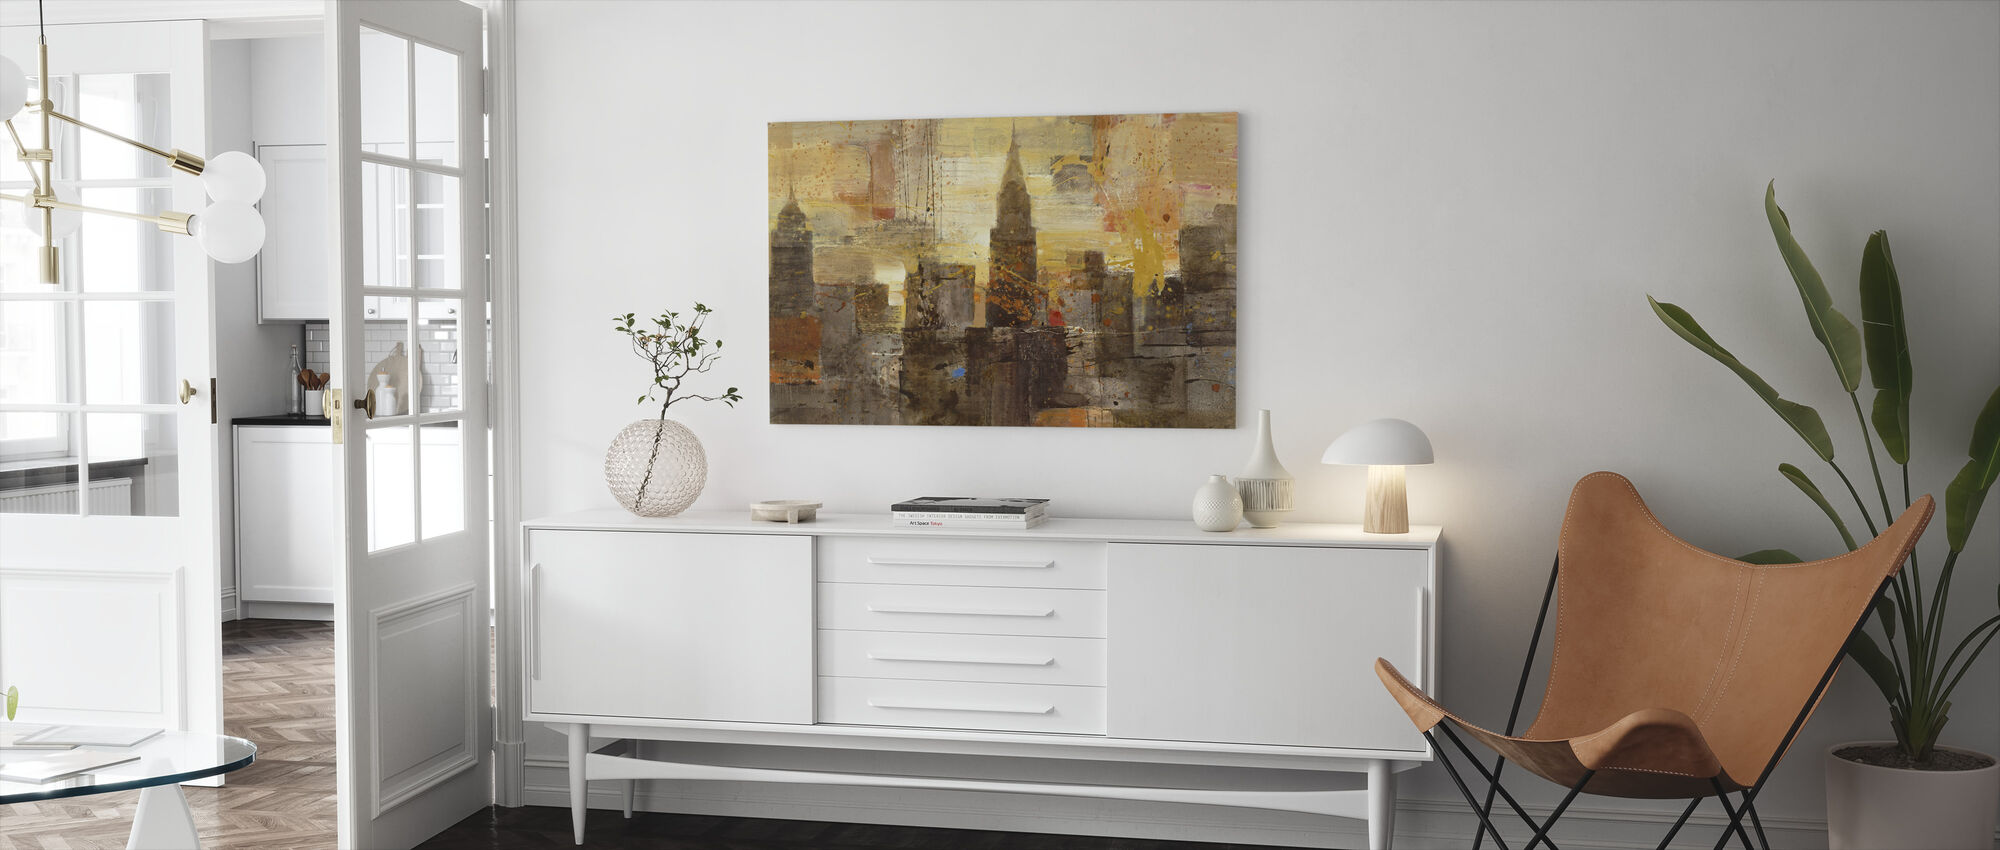 Fireworks - Canvas print - Living Room